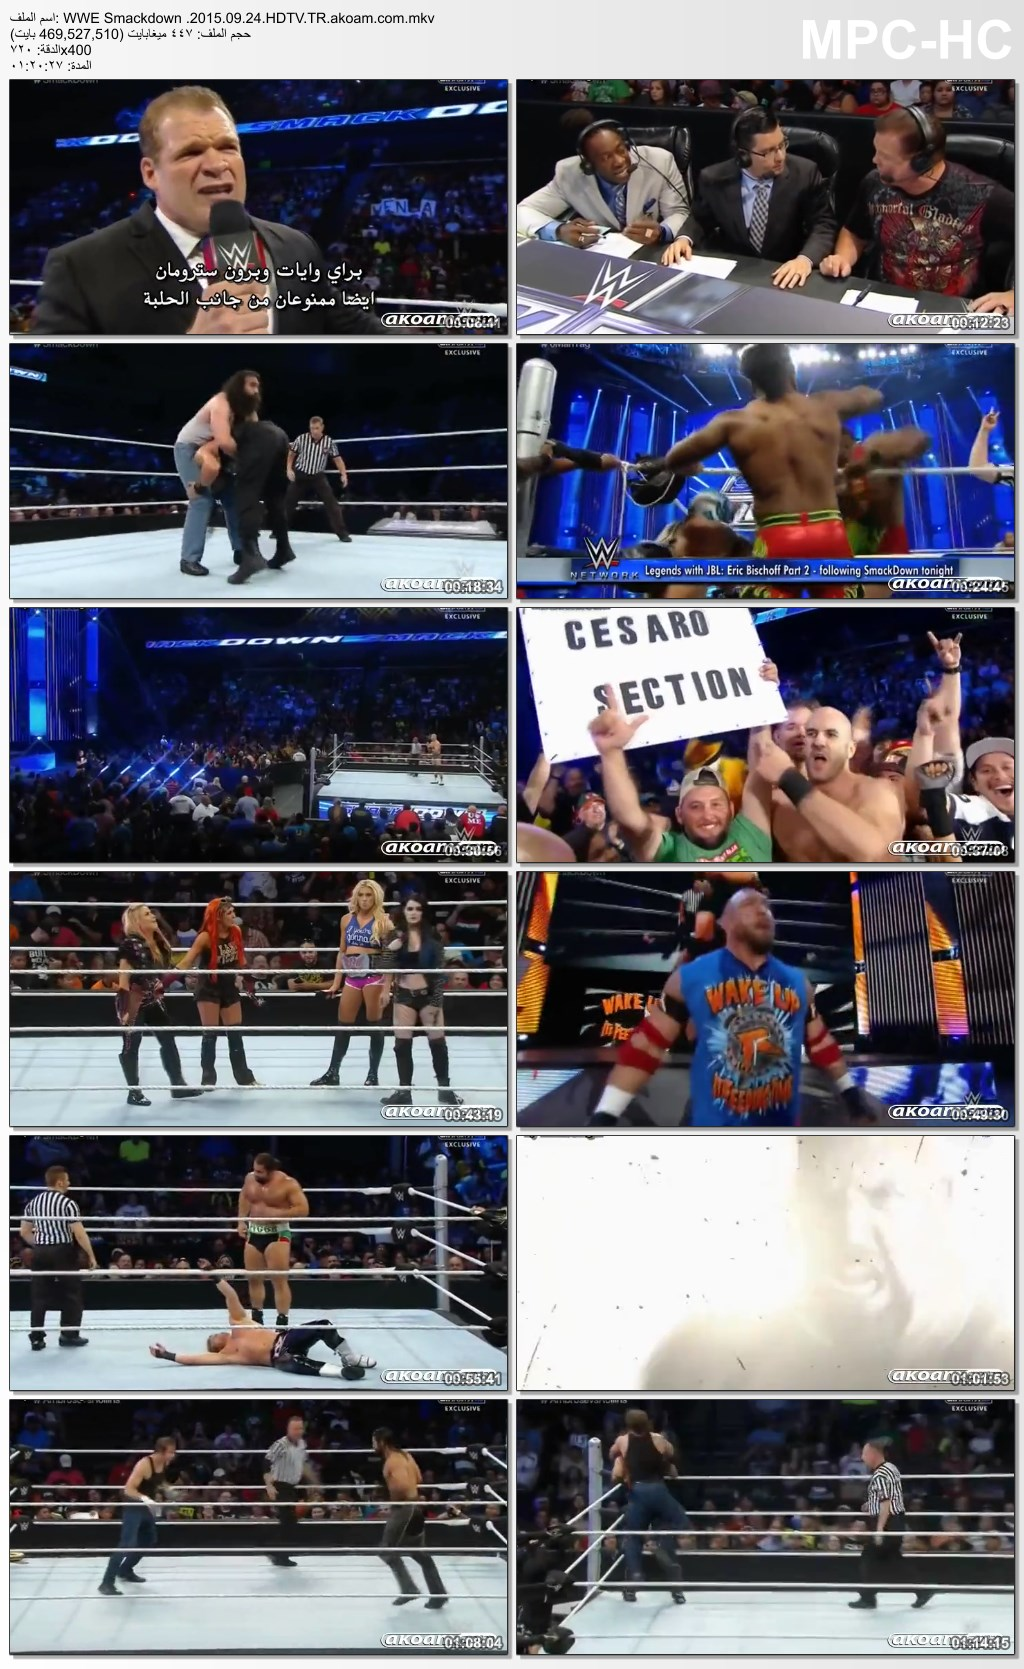 Smackdown,WWE